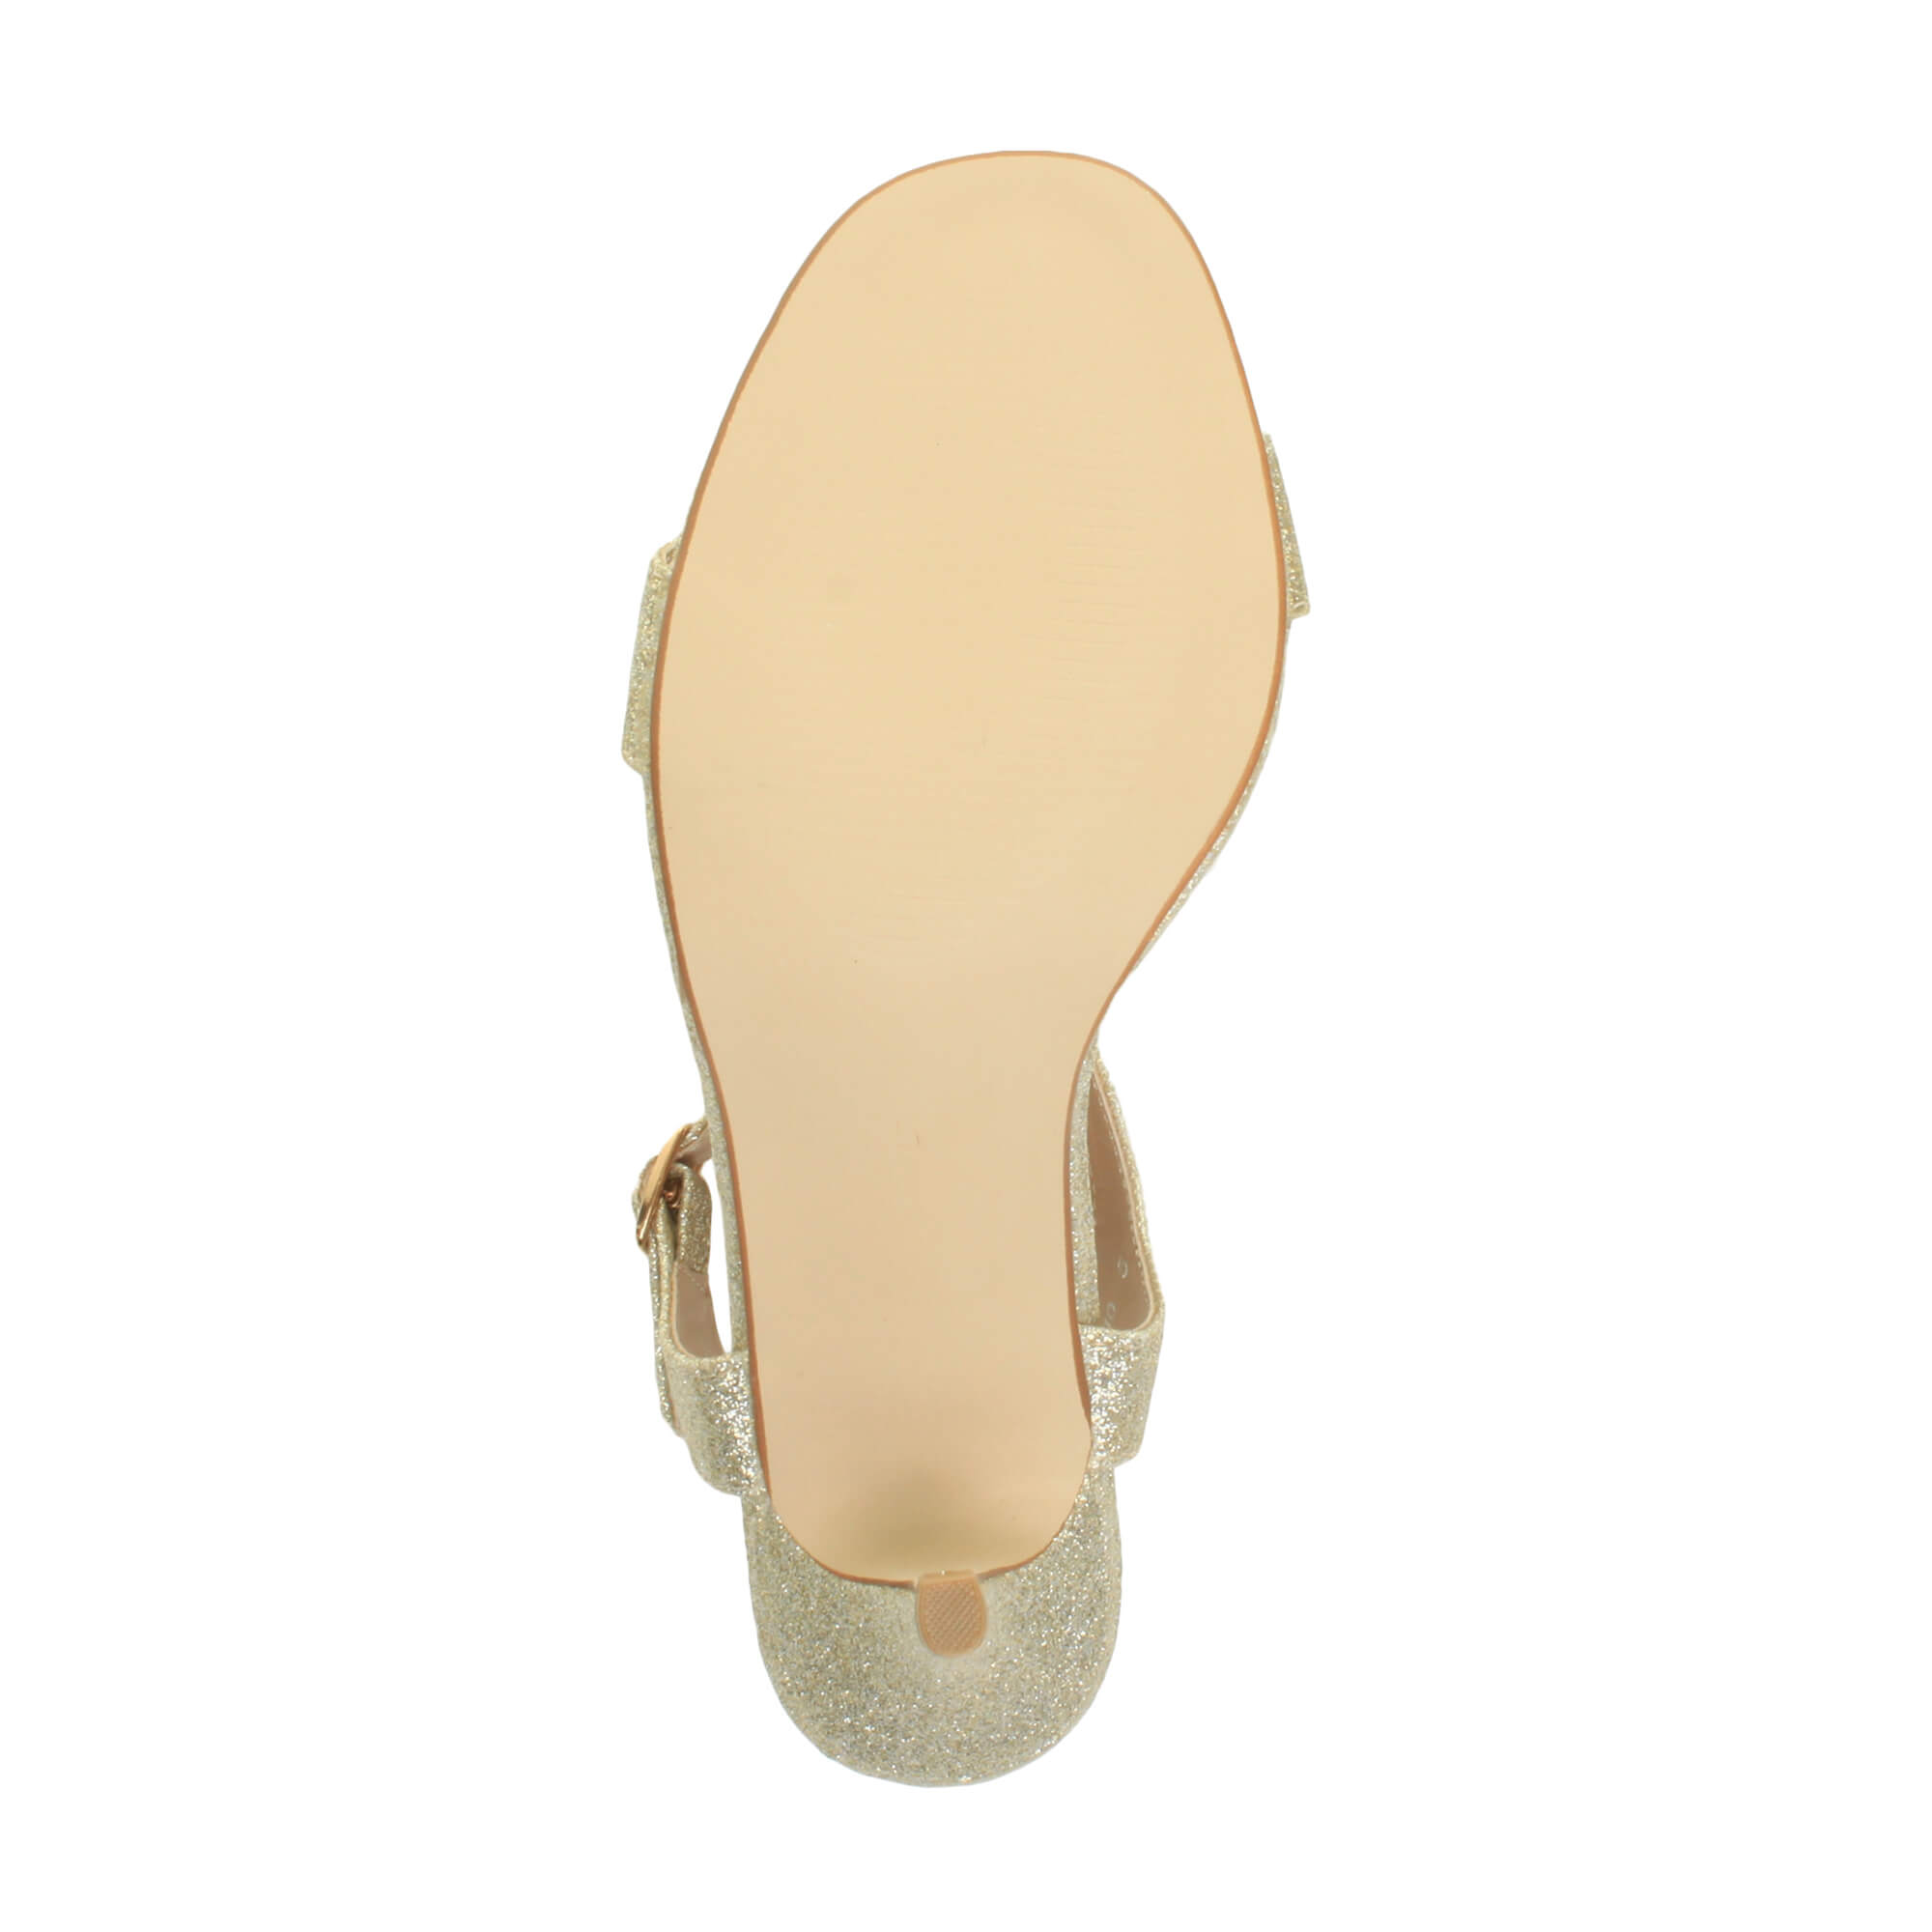 WOMENS-LADIES-HIGH-HEEL-BUCKLE-STRAPPY-BASIC-BARELY-THERE-SANDALS-SHOES-SIZE thumbnail 43